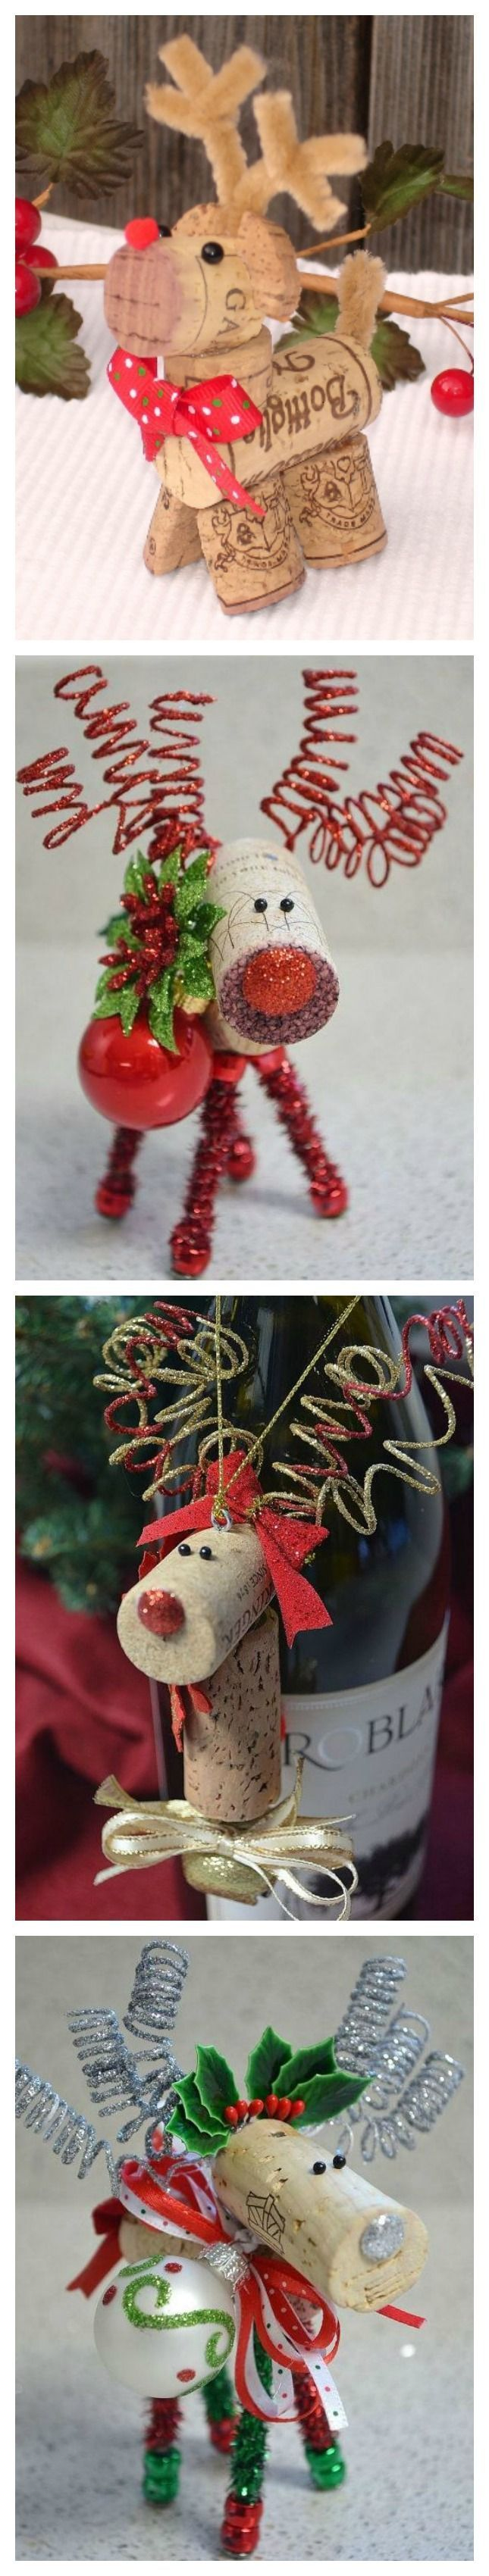 17 Epic Christmas Craft Ideas 619 best